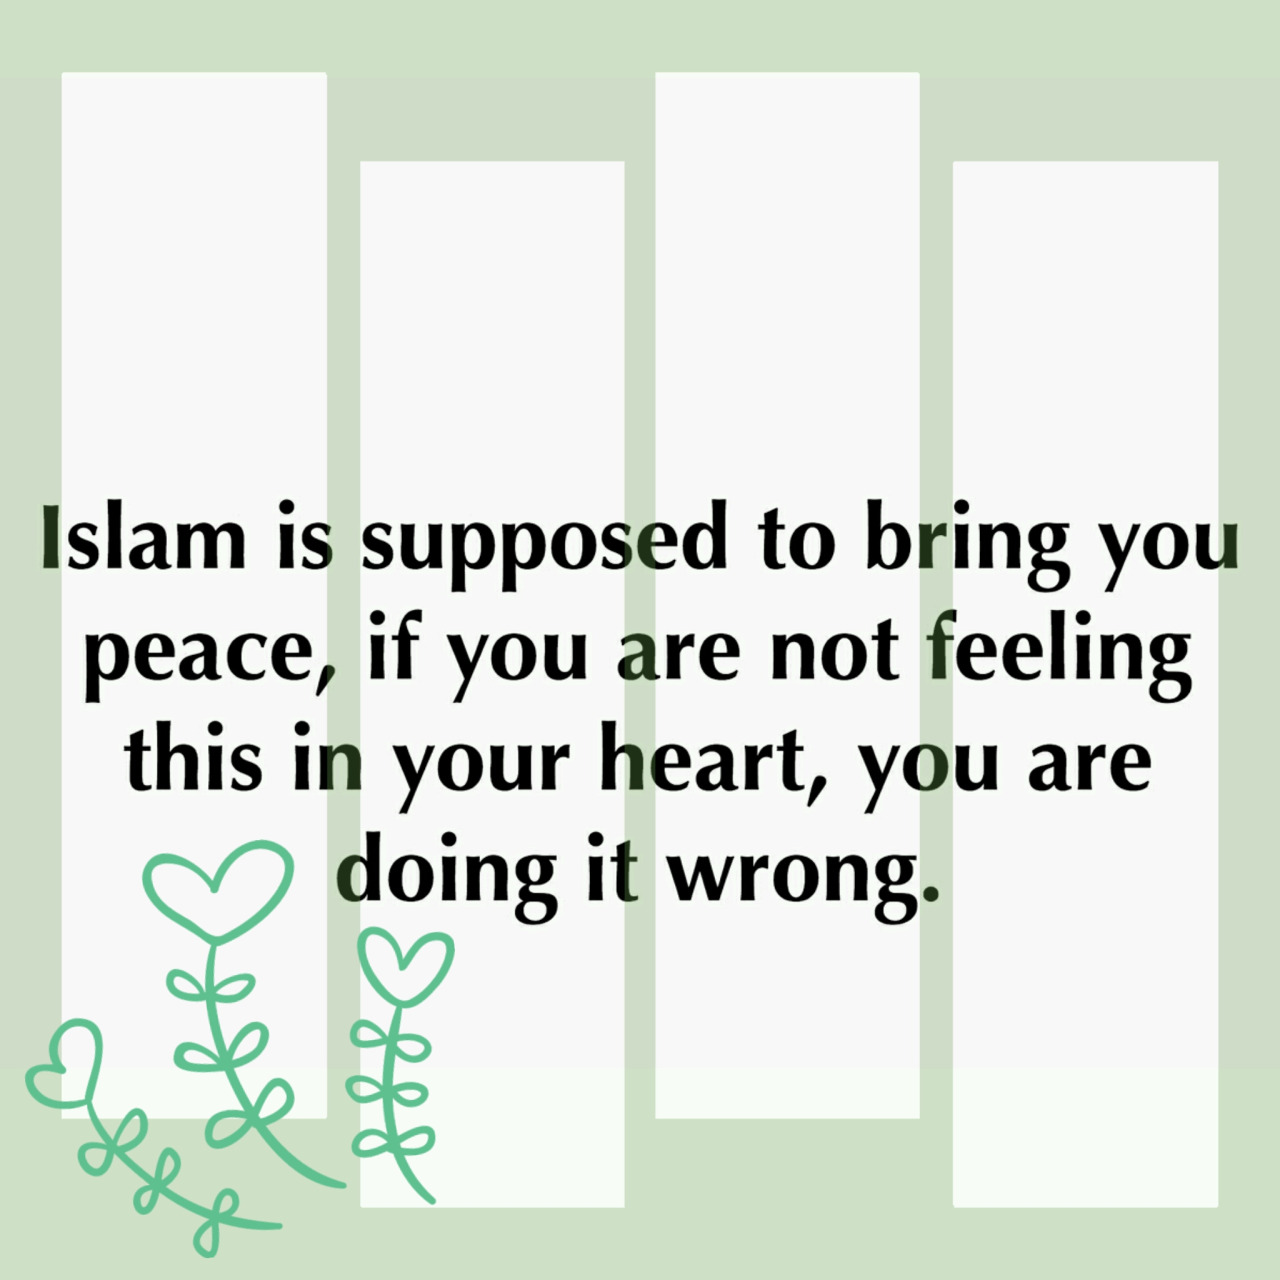 Islam brings peace